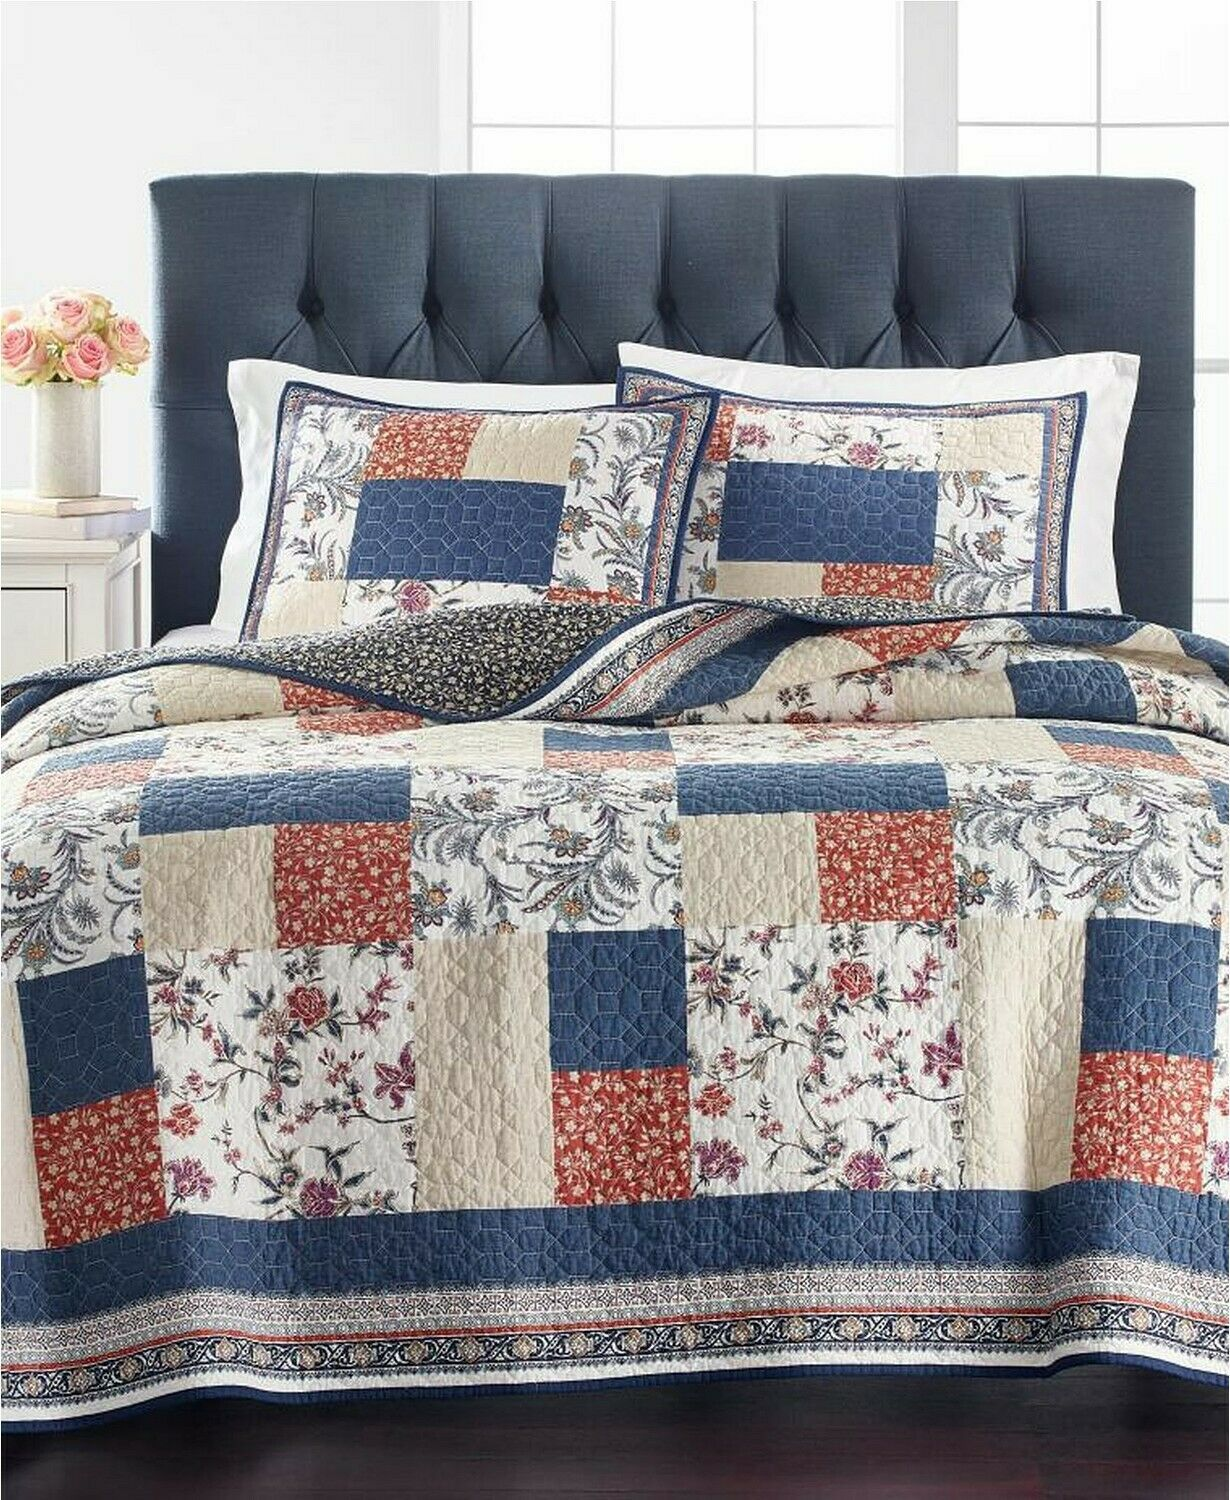 Martha Stewart Collection Mind Your Manor Floral Patchwork Full/Queen Quilt - $92.13